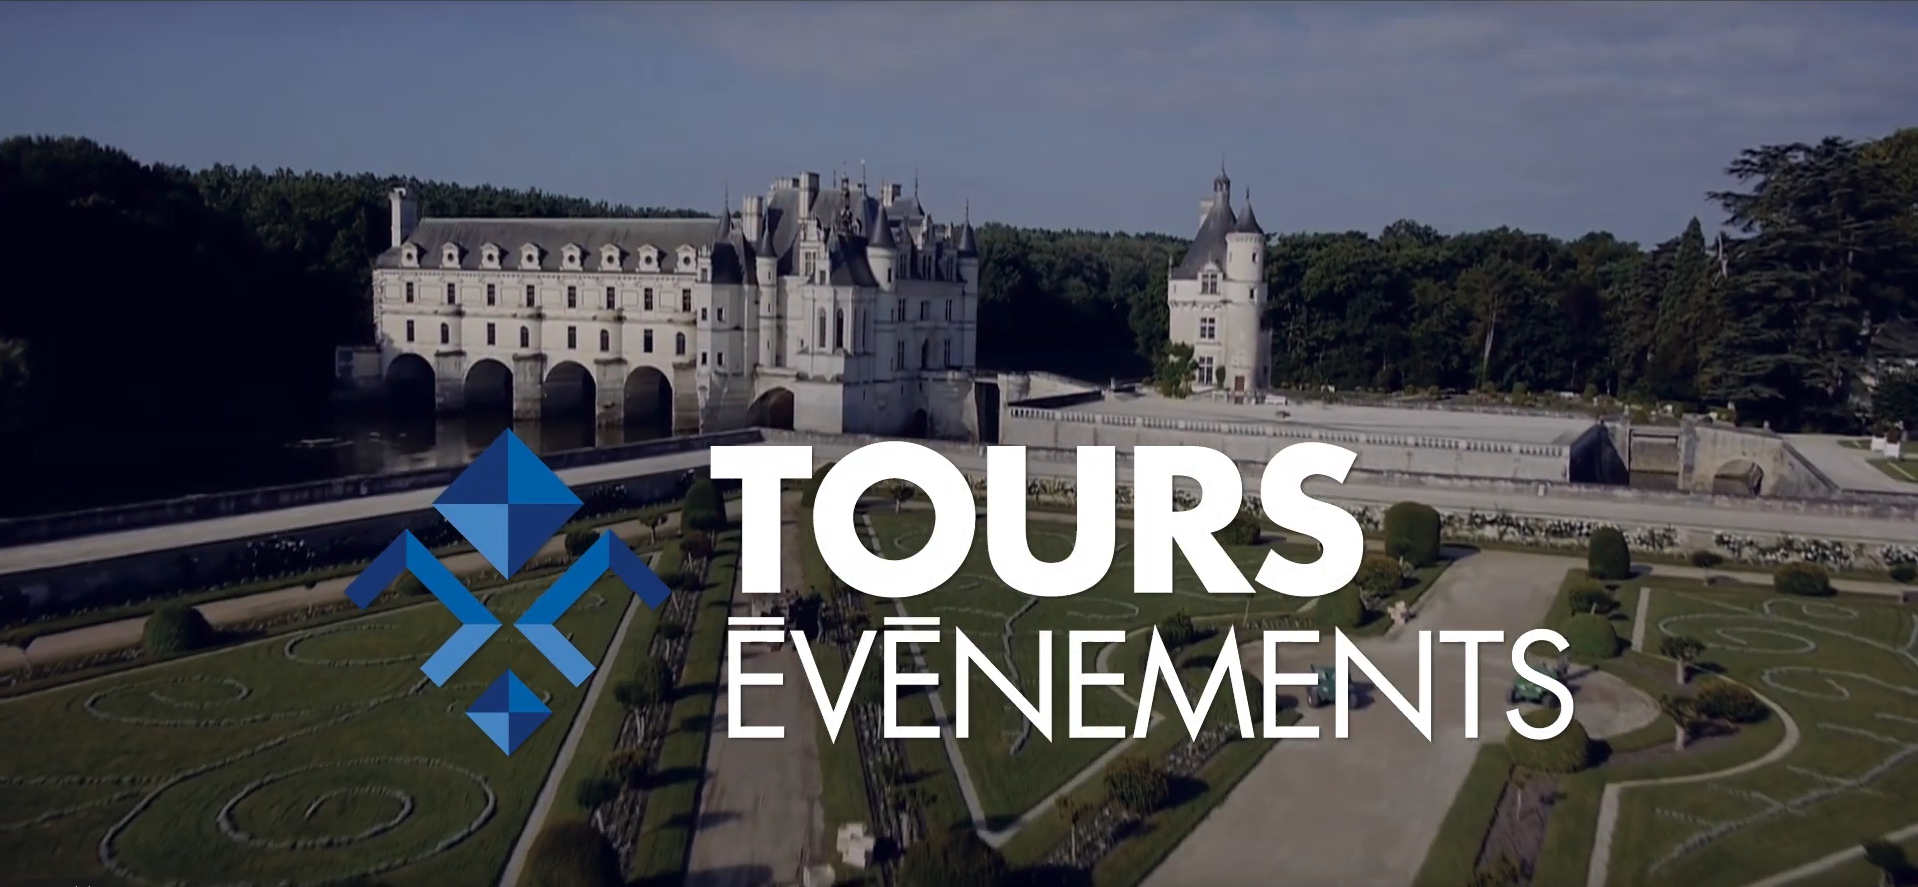 tours evenements video corpo